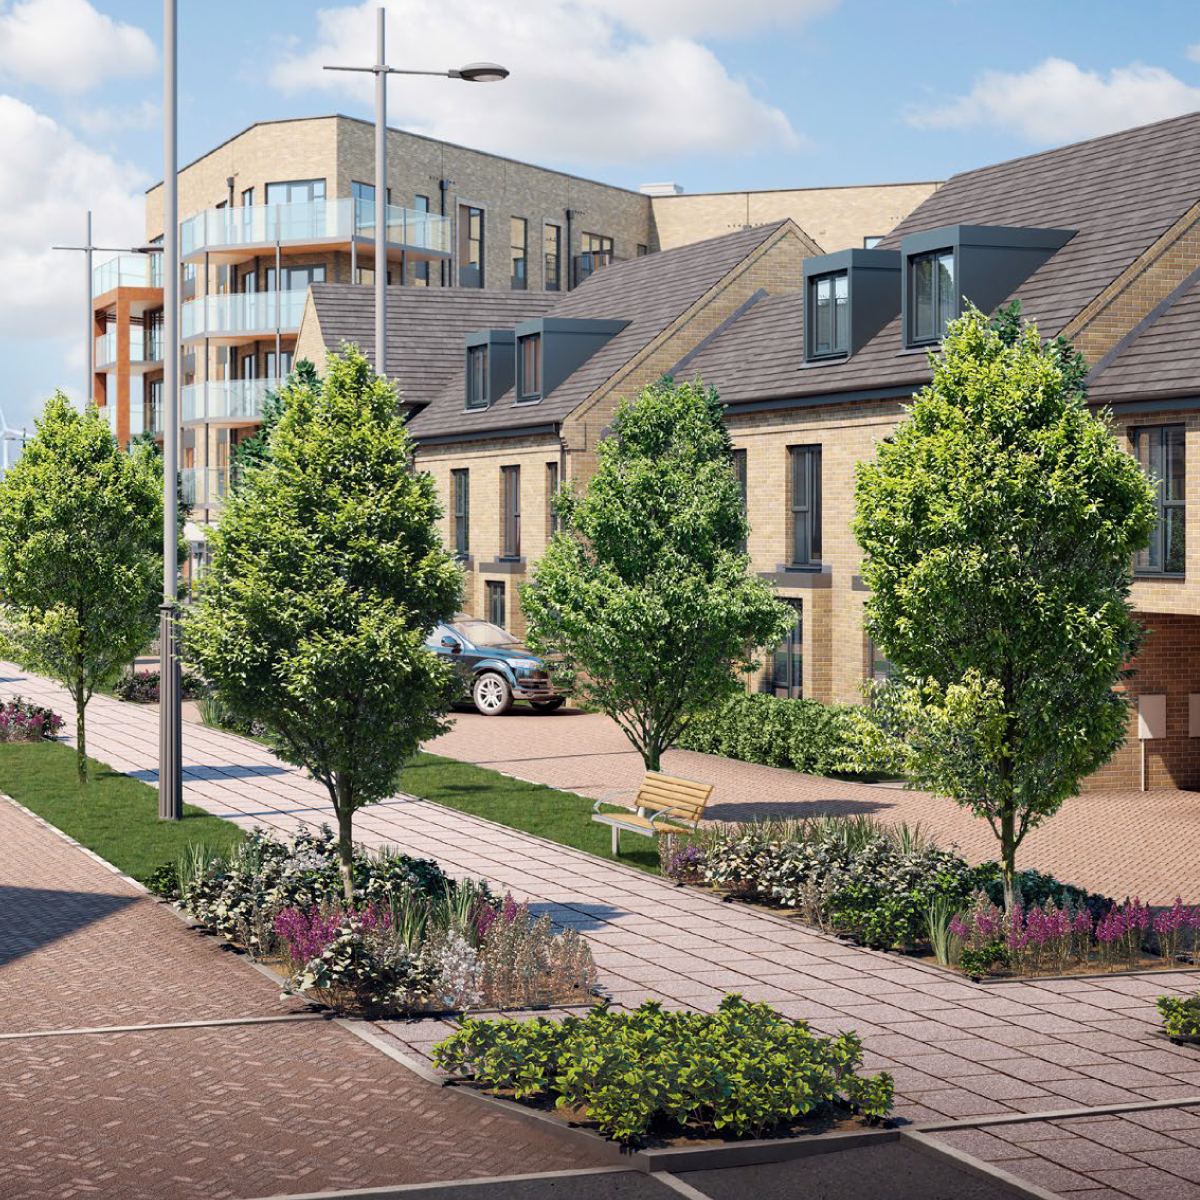 Phase 2 of Thames Riverside Development Launches